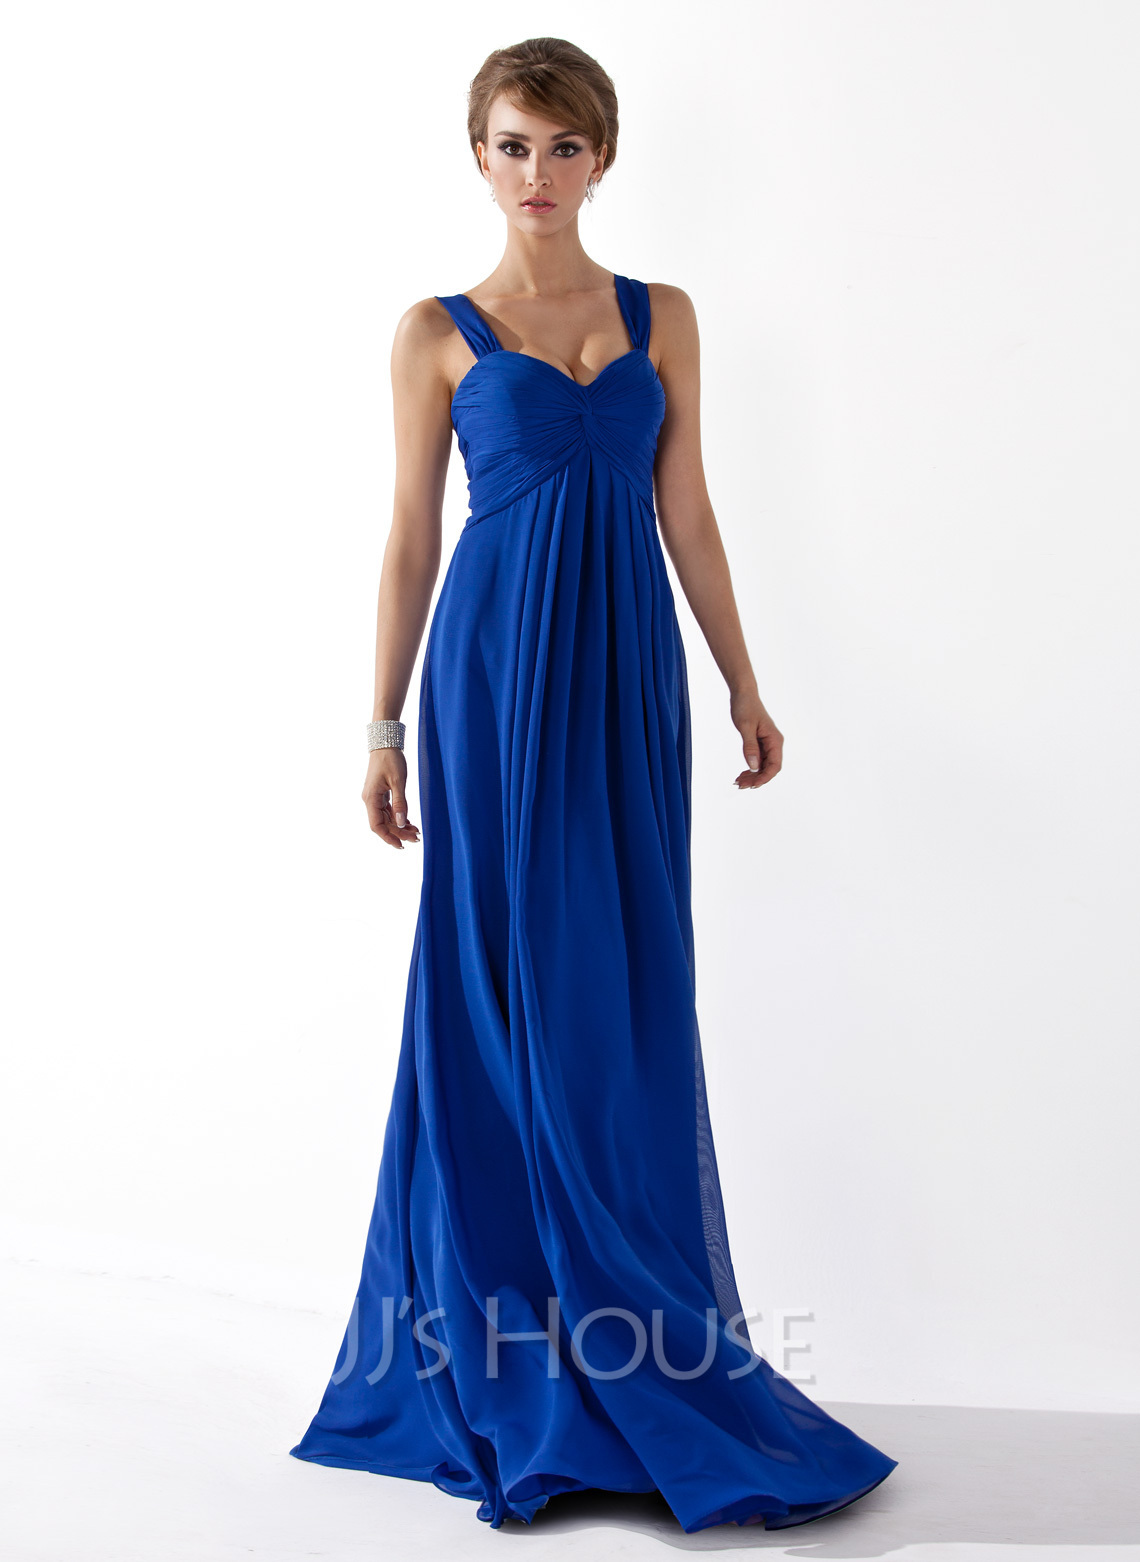 Chiffon Floorlength Empire Sweetheart Bridesmaid Dress